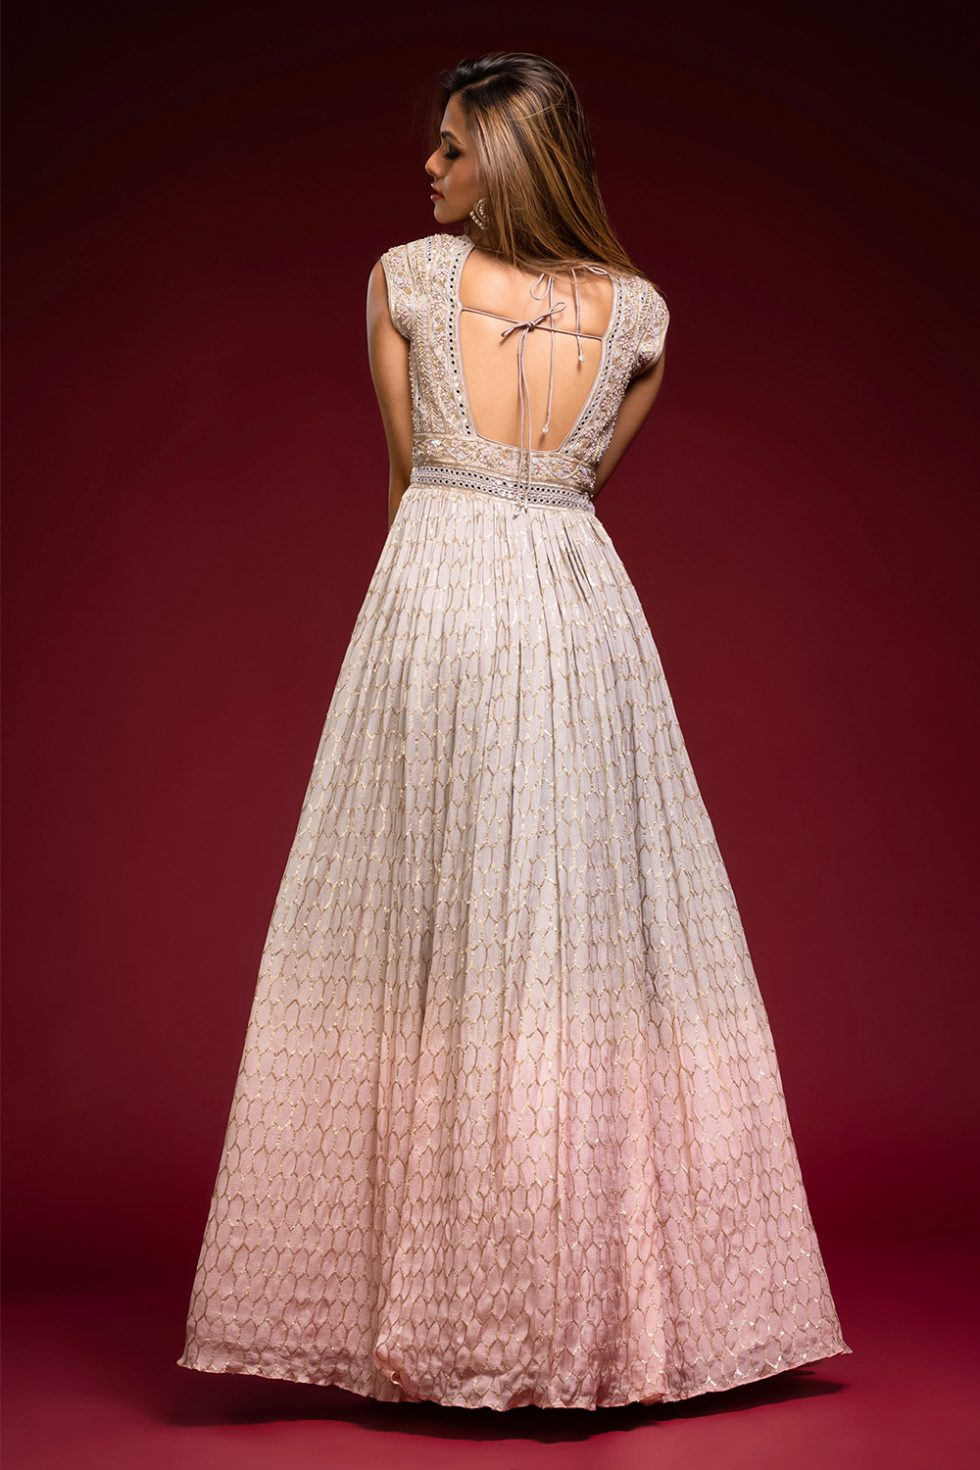 Ombré grey to baby pink gold geometric patterned Anarkali gown set with a hand embroidered bodice paired with a matching shaded dupatta and gold embellishments.